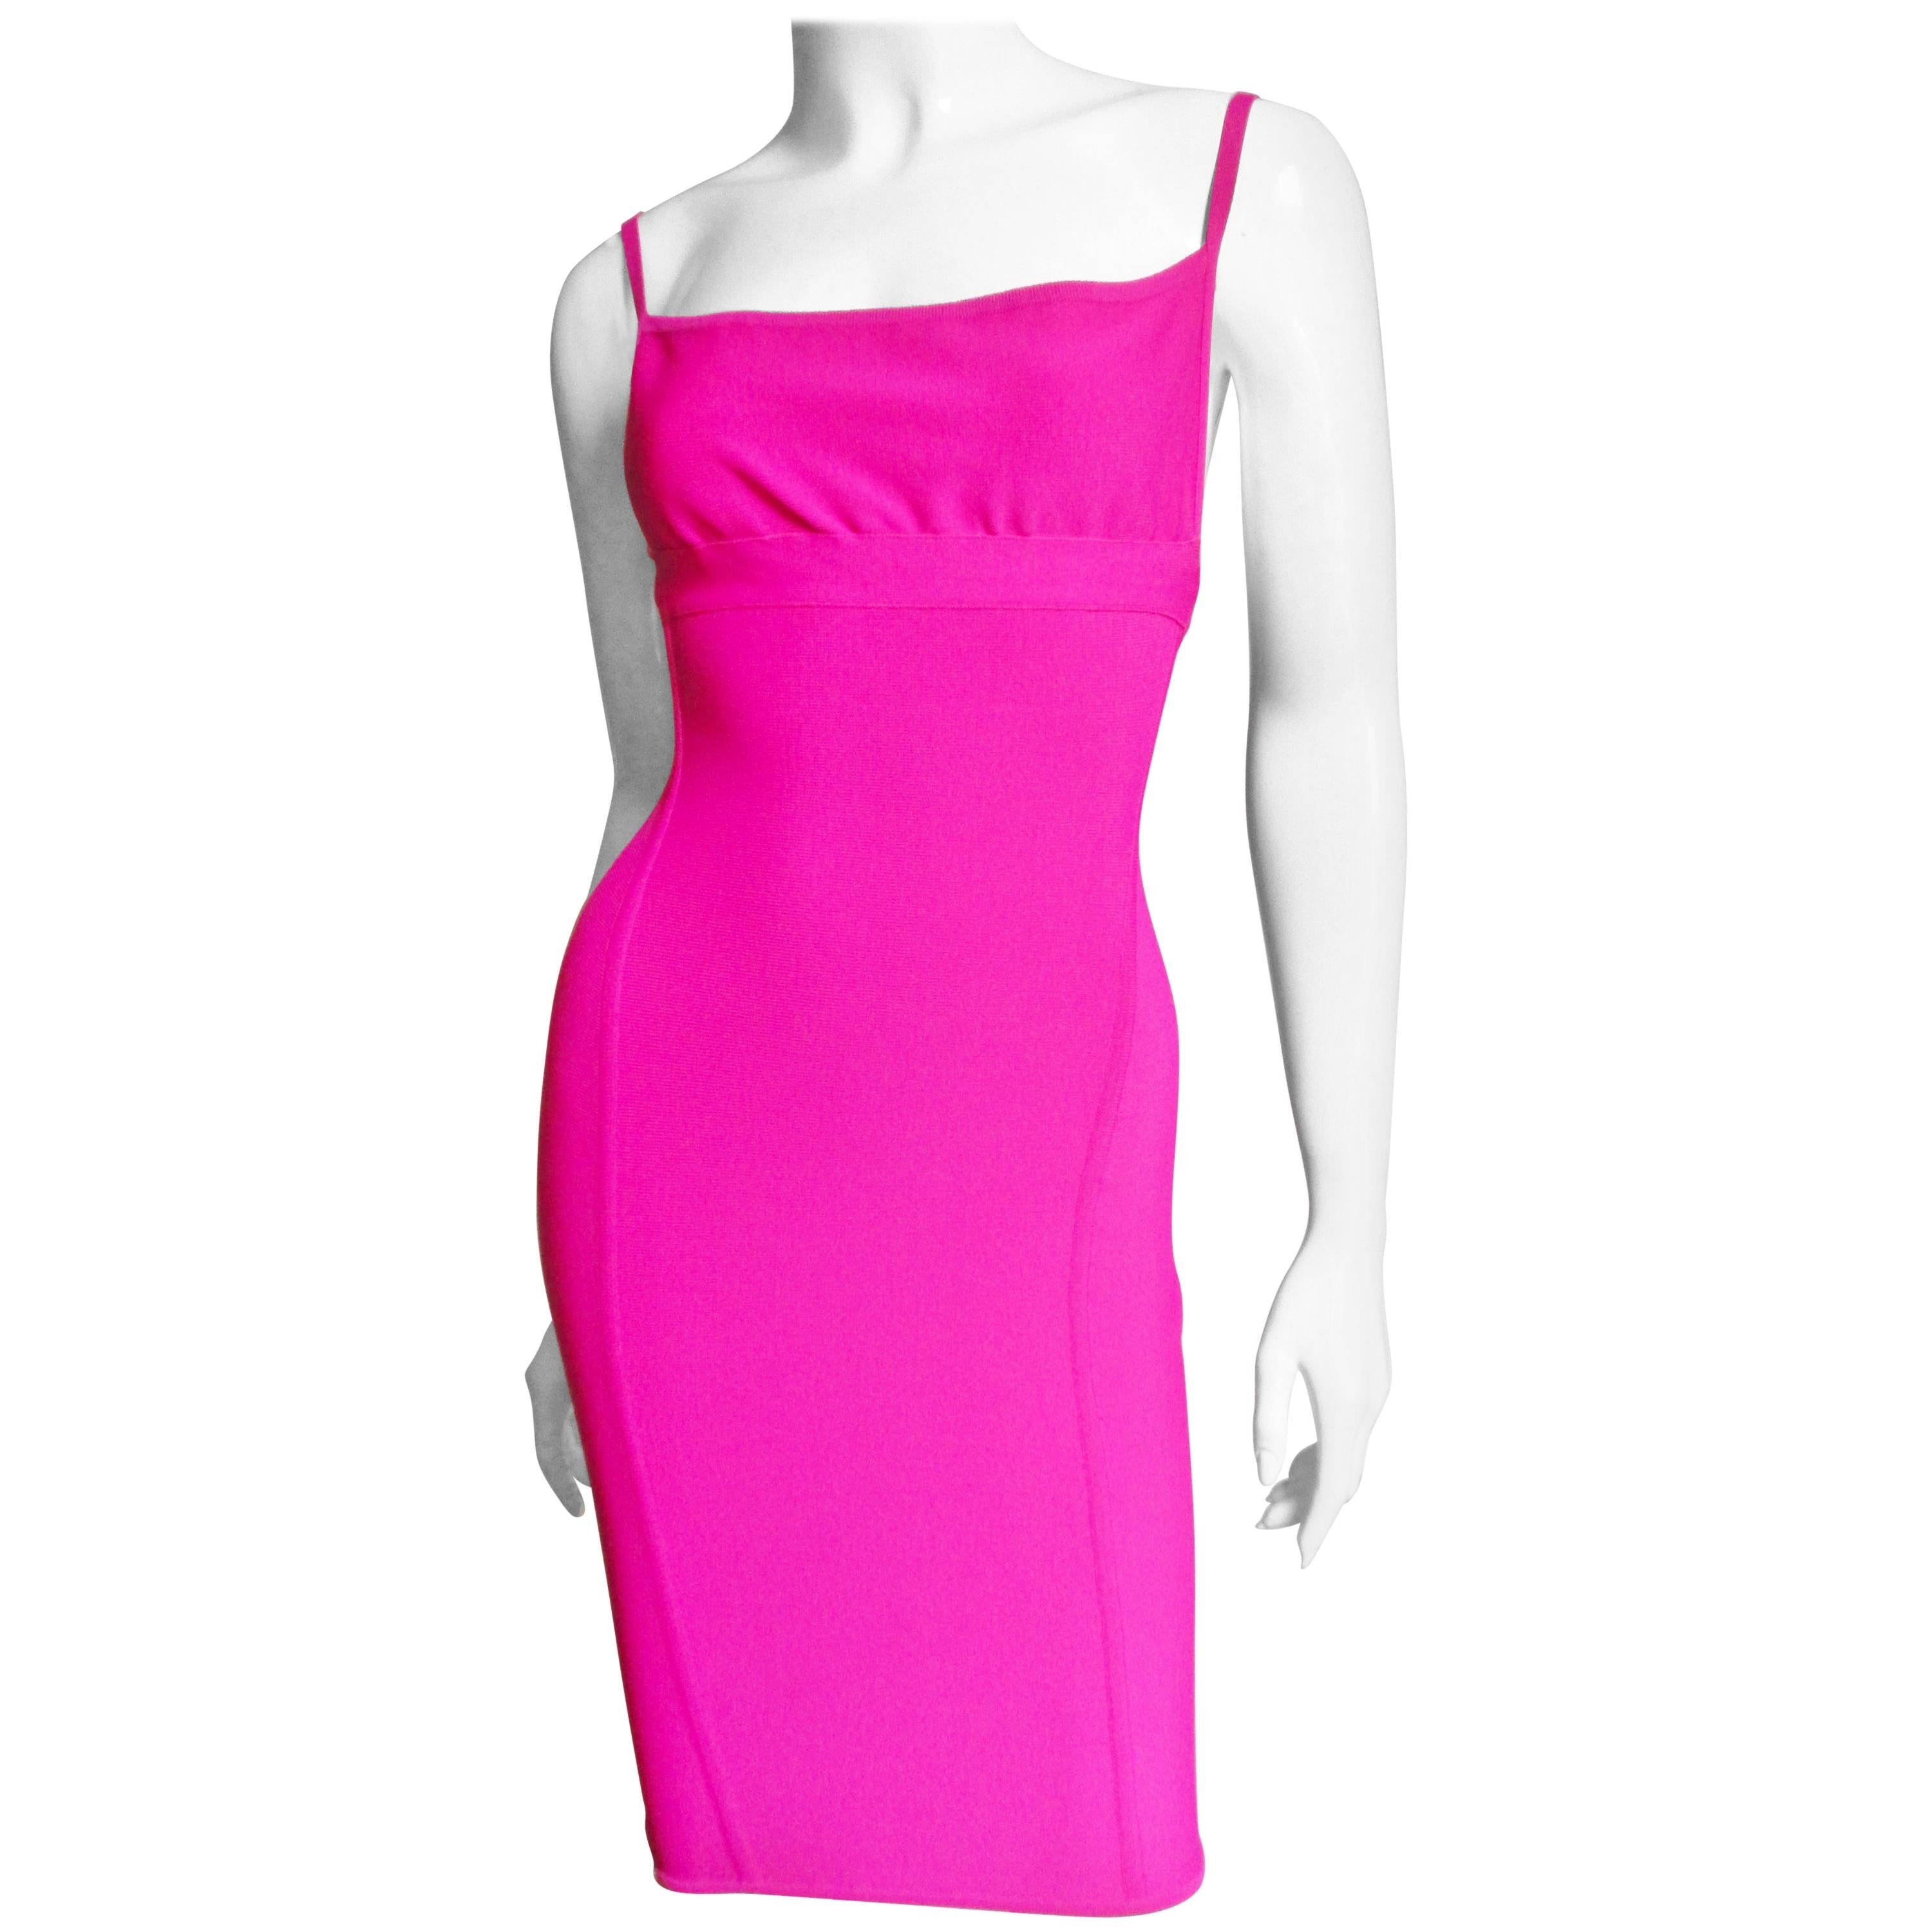 Herve Leger Hot Pink Bodycon Dress 1990s